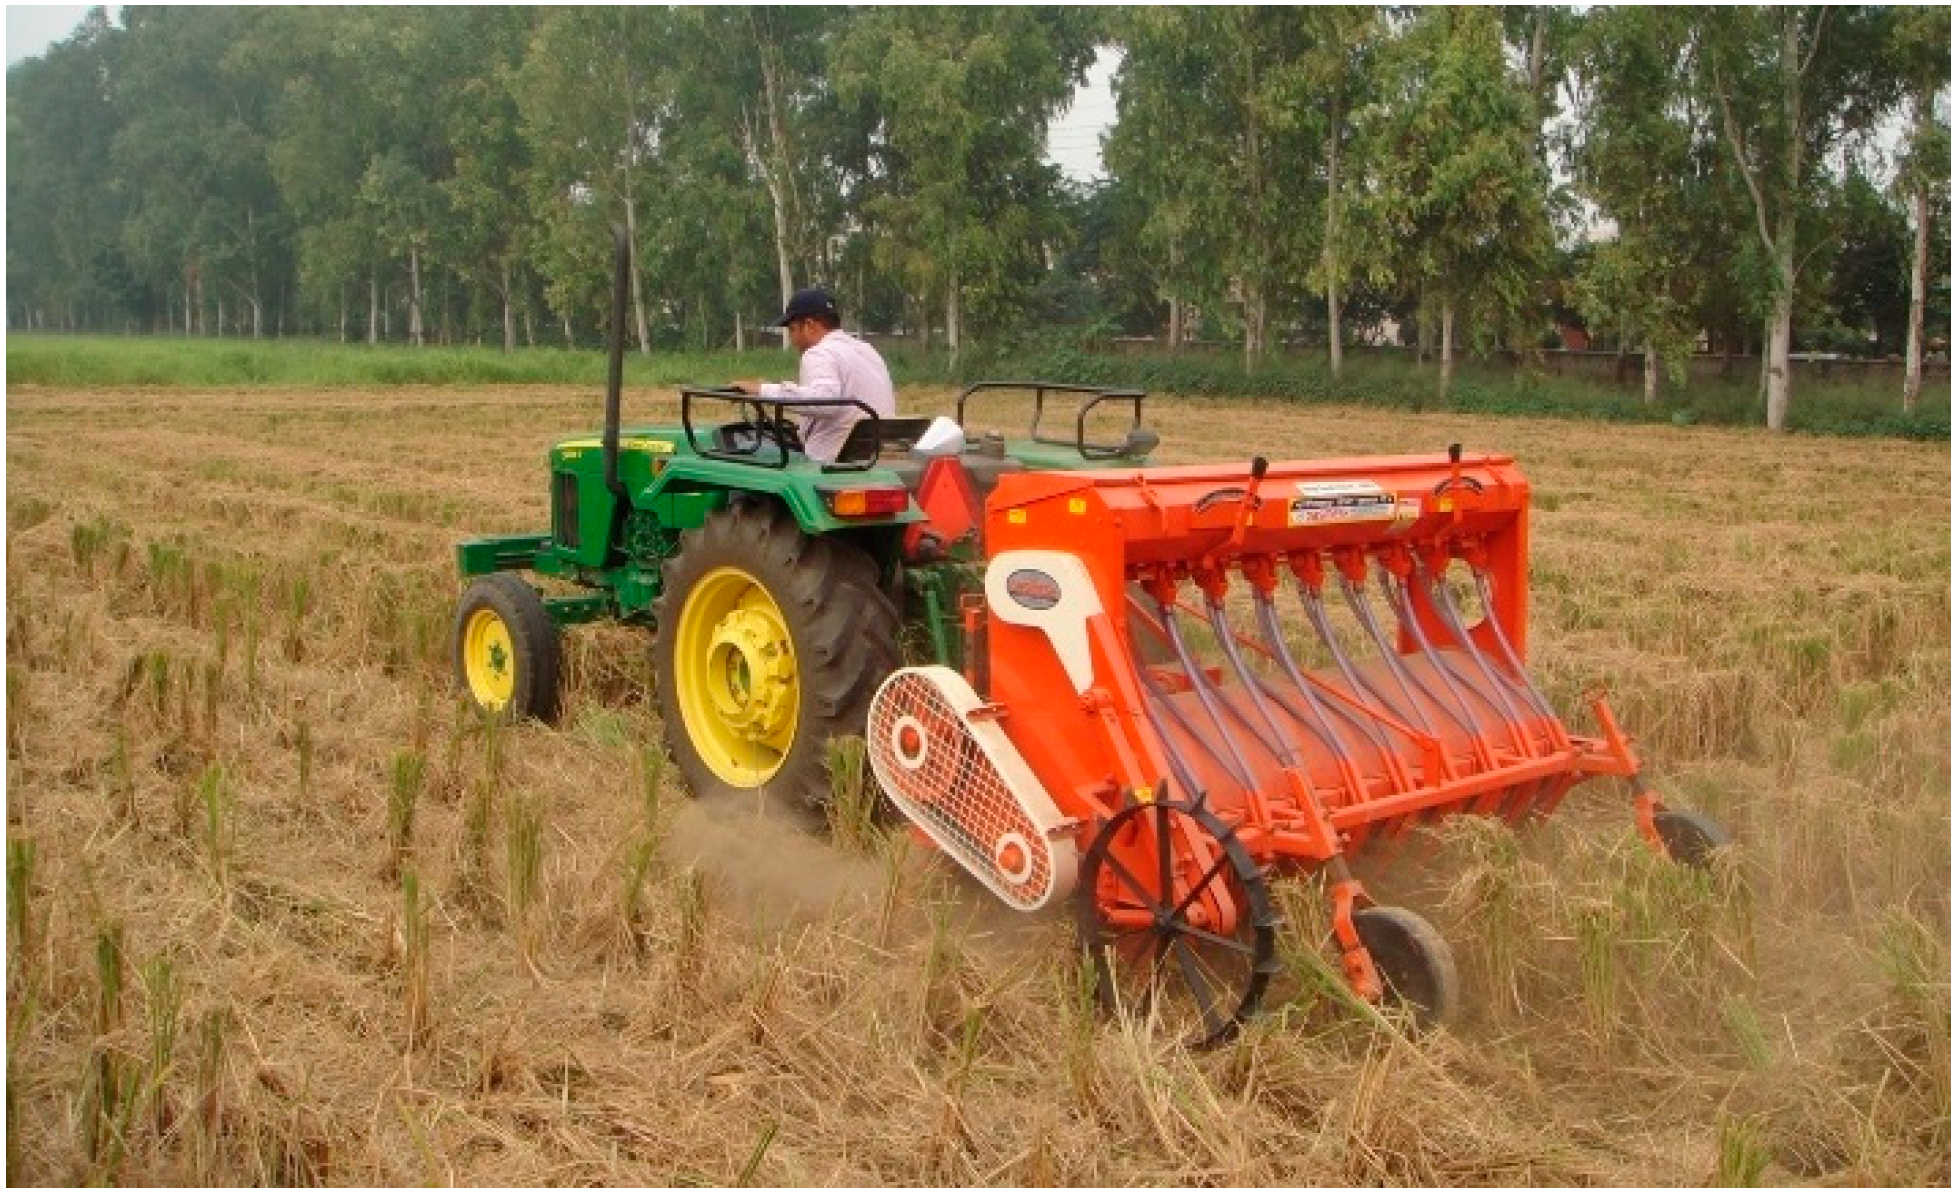 Jabs Farm Lessons Cheap environments | free full-text | mechanization of conservation